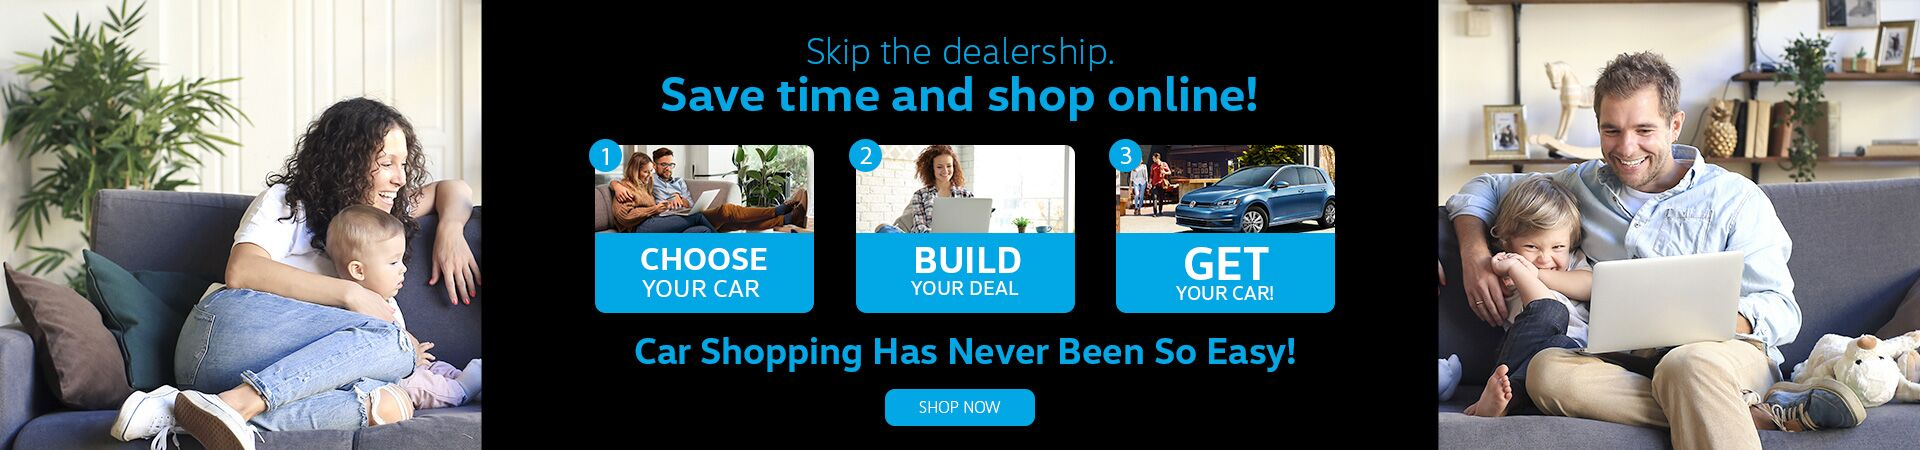 Save Time & Shop Online